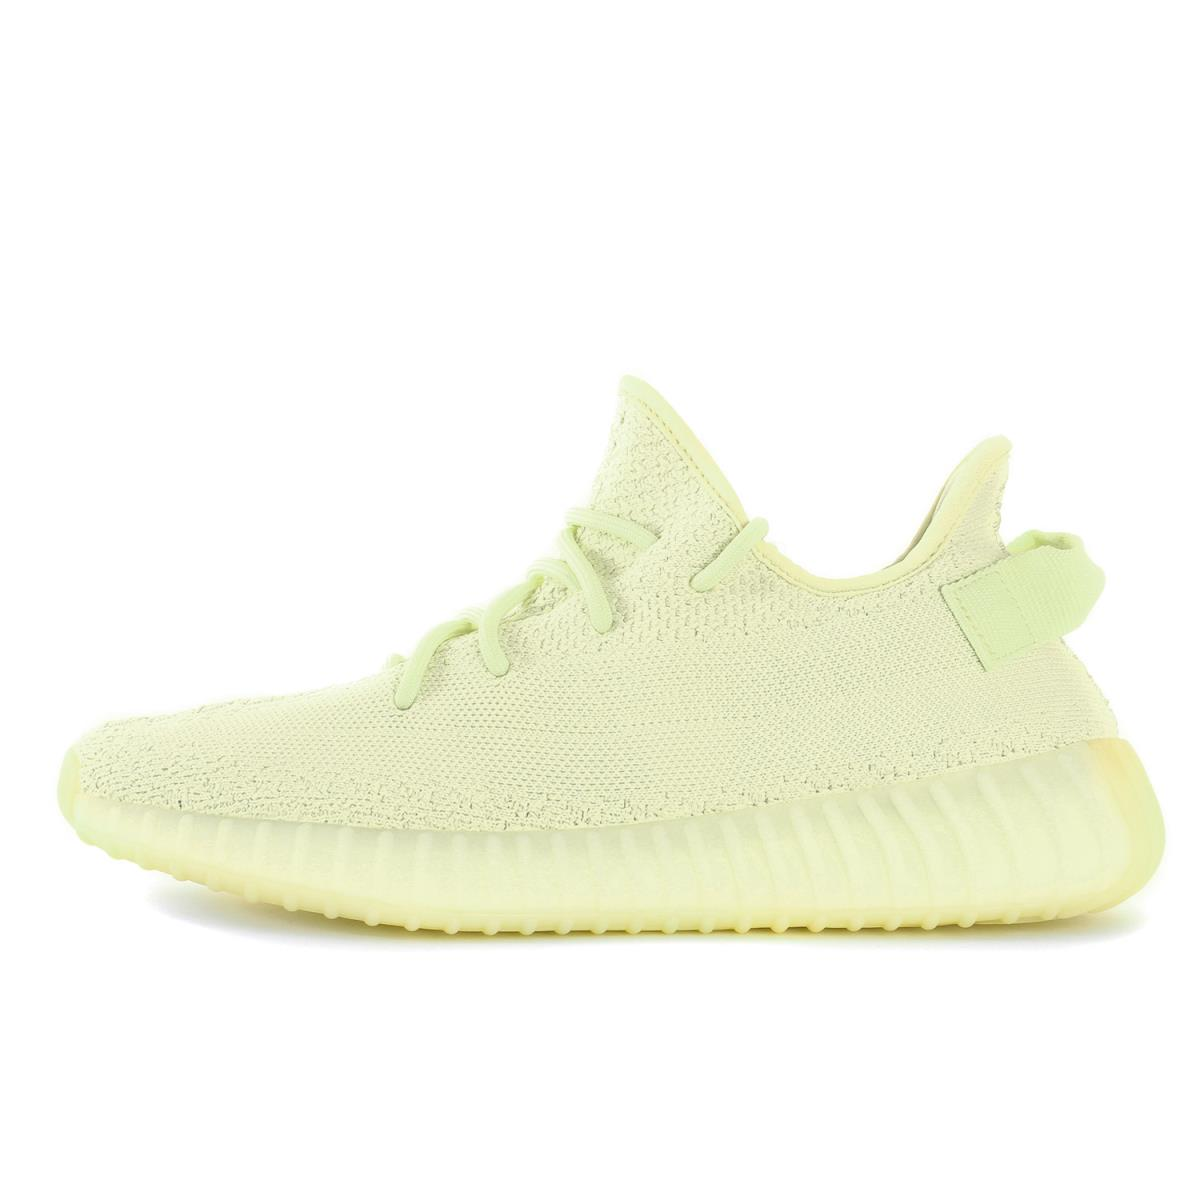 1caefd4accc7d adidas (Adidas) 18S S YEEZY BOOST 350 V2 BUTTER (F36980) butter US8(26cm)